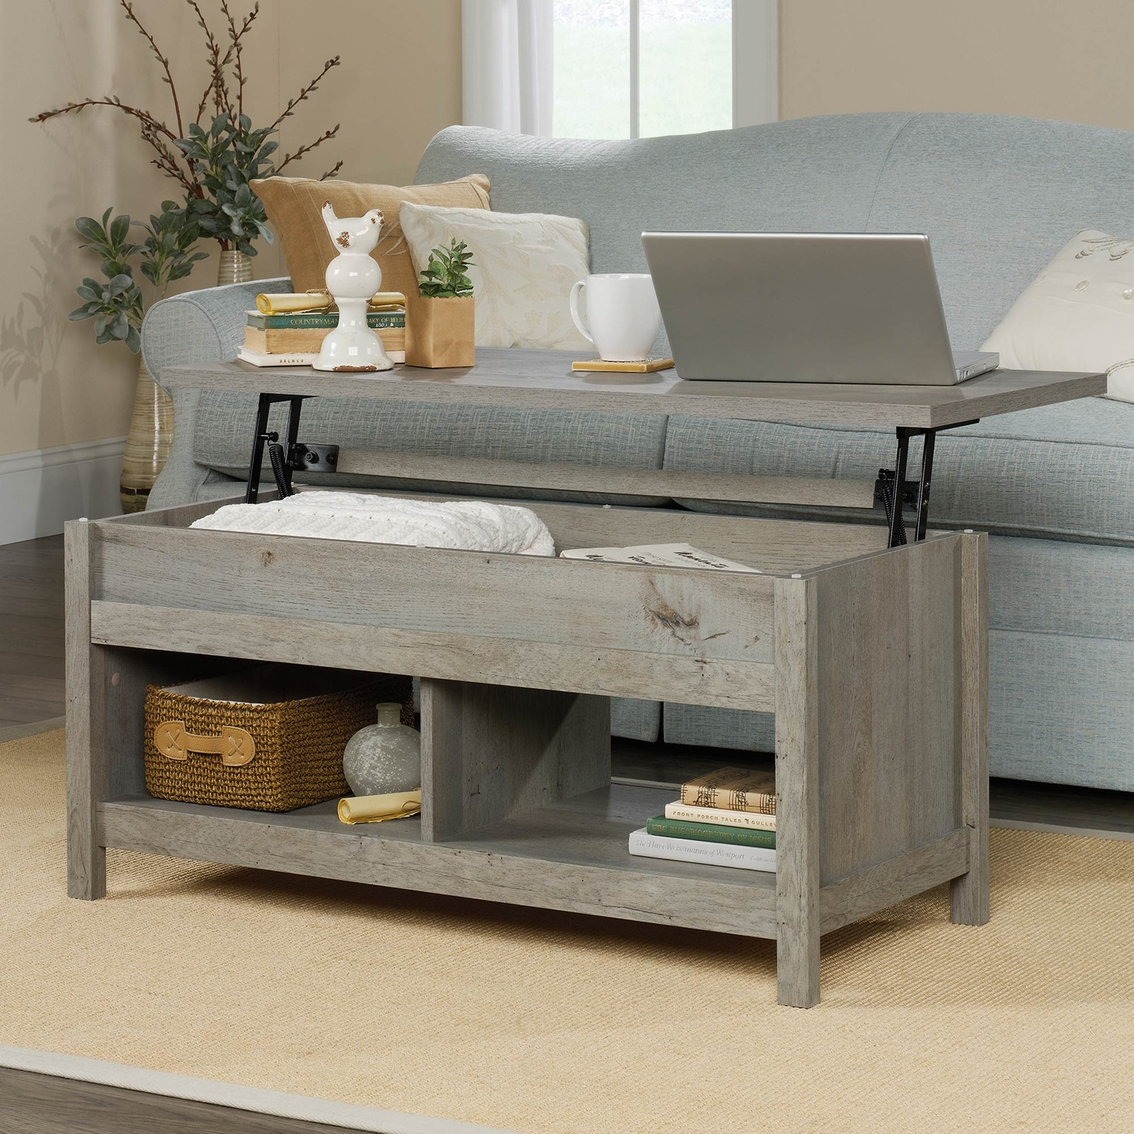 Sauder Cannery Bridge Lift Top Coffee Table